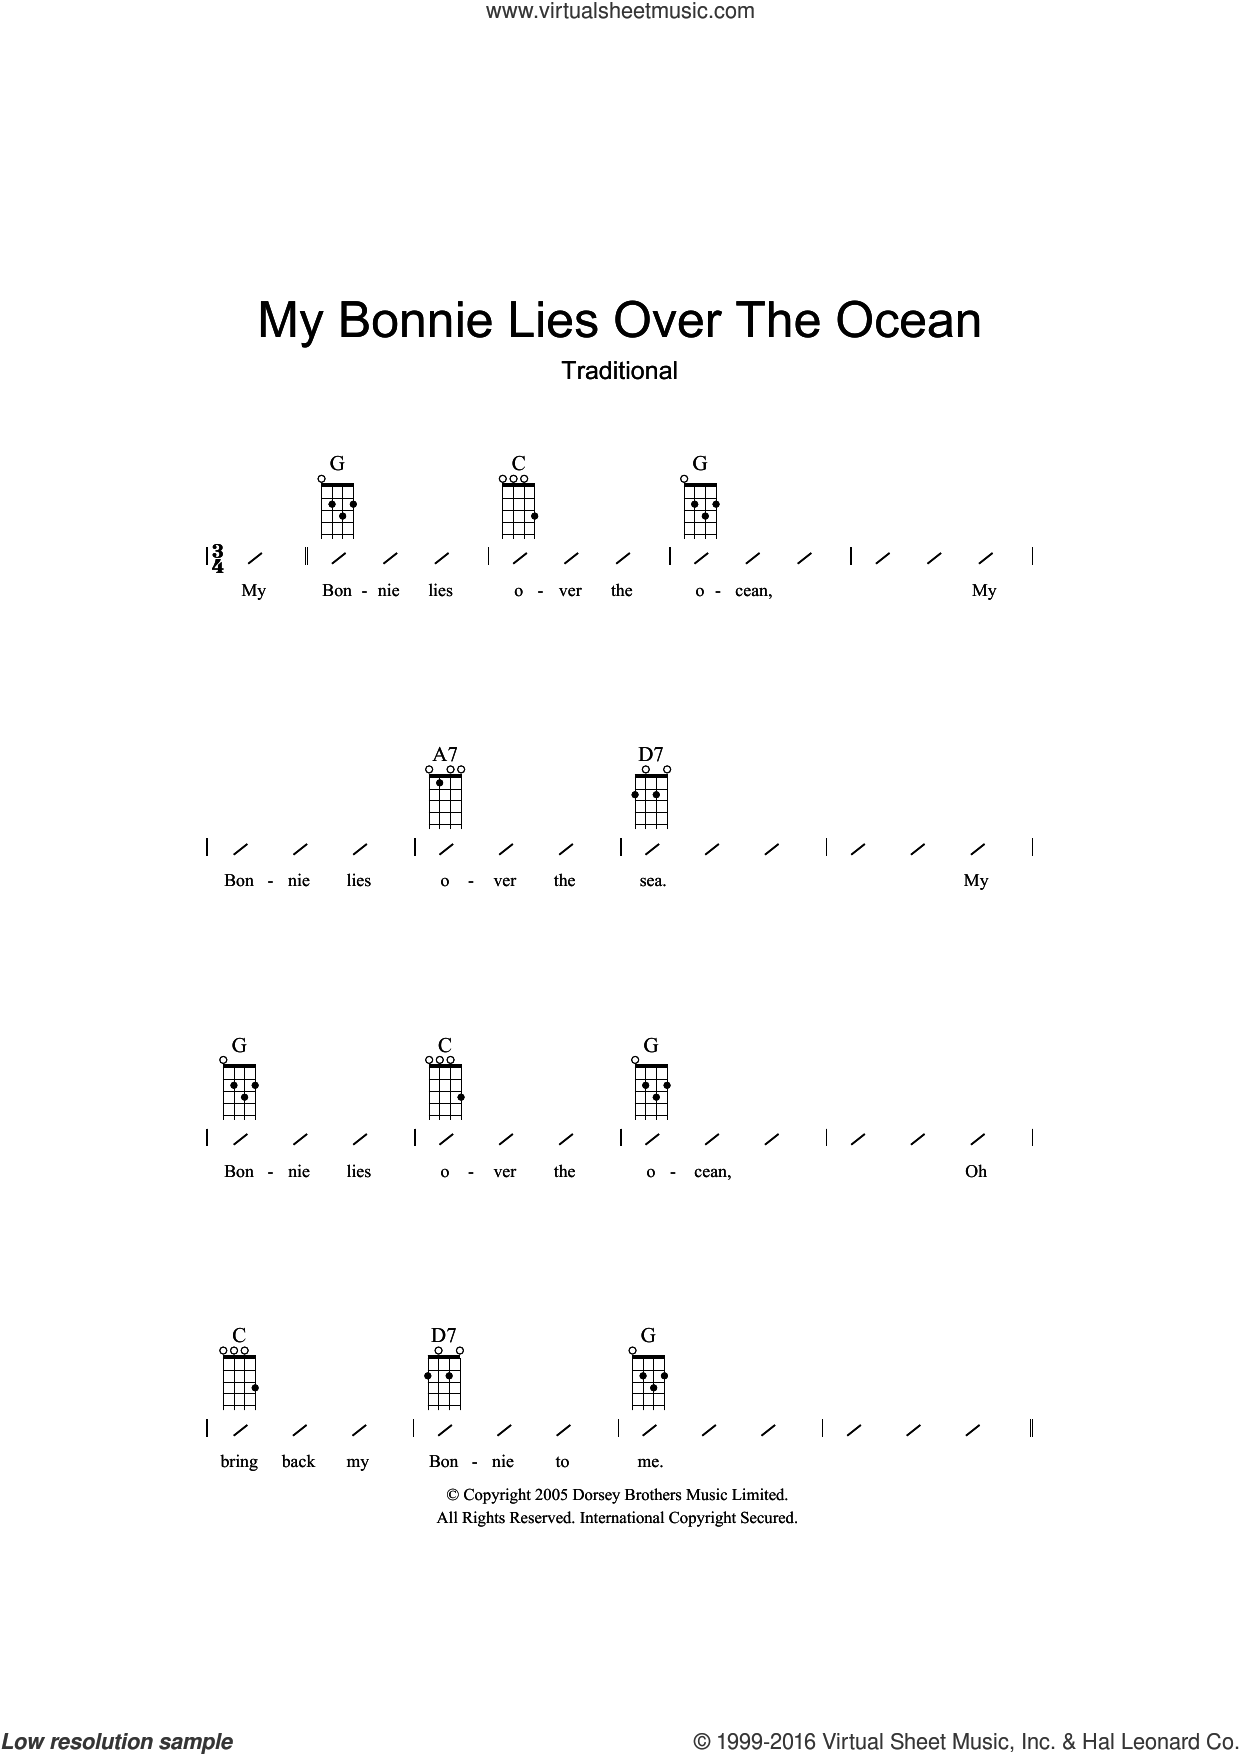 My Bonnie Lies Over The Ocean sheet music for ukulele (chords), intermediate skill level